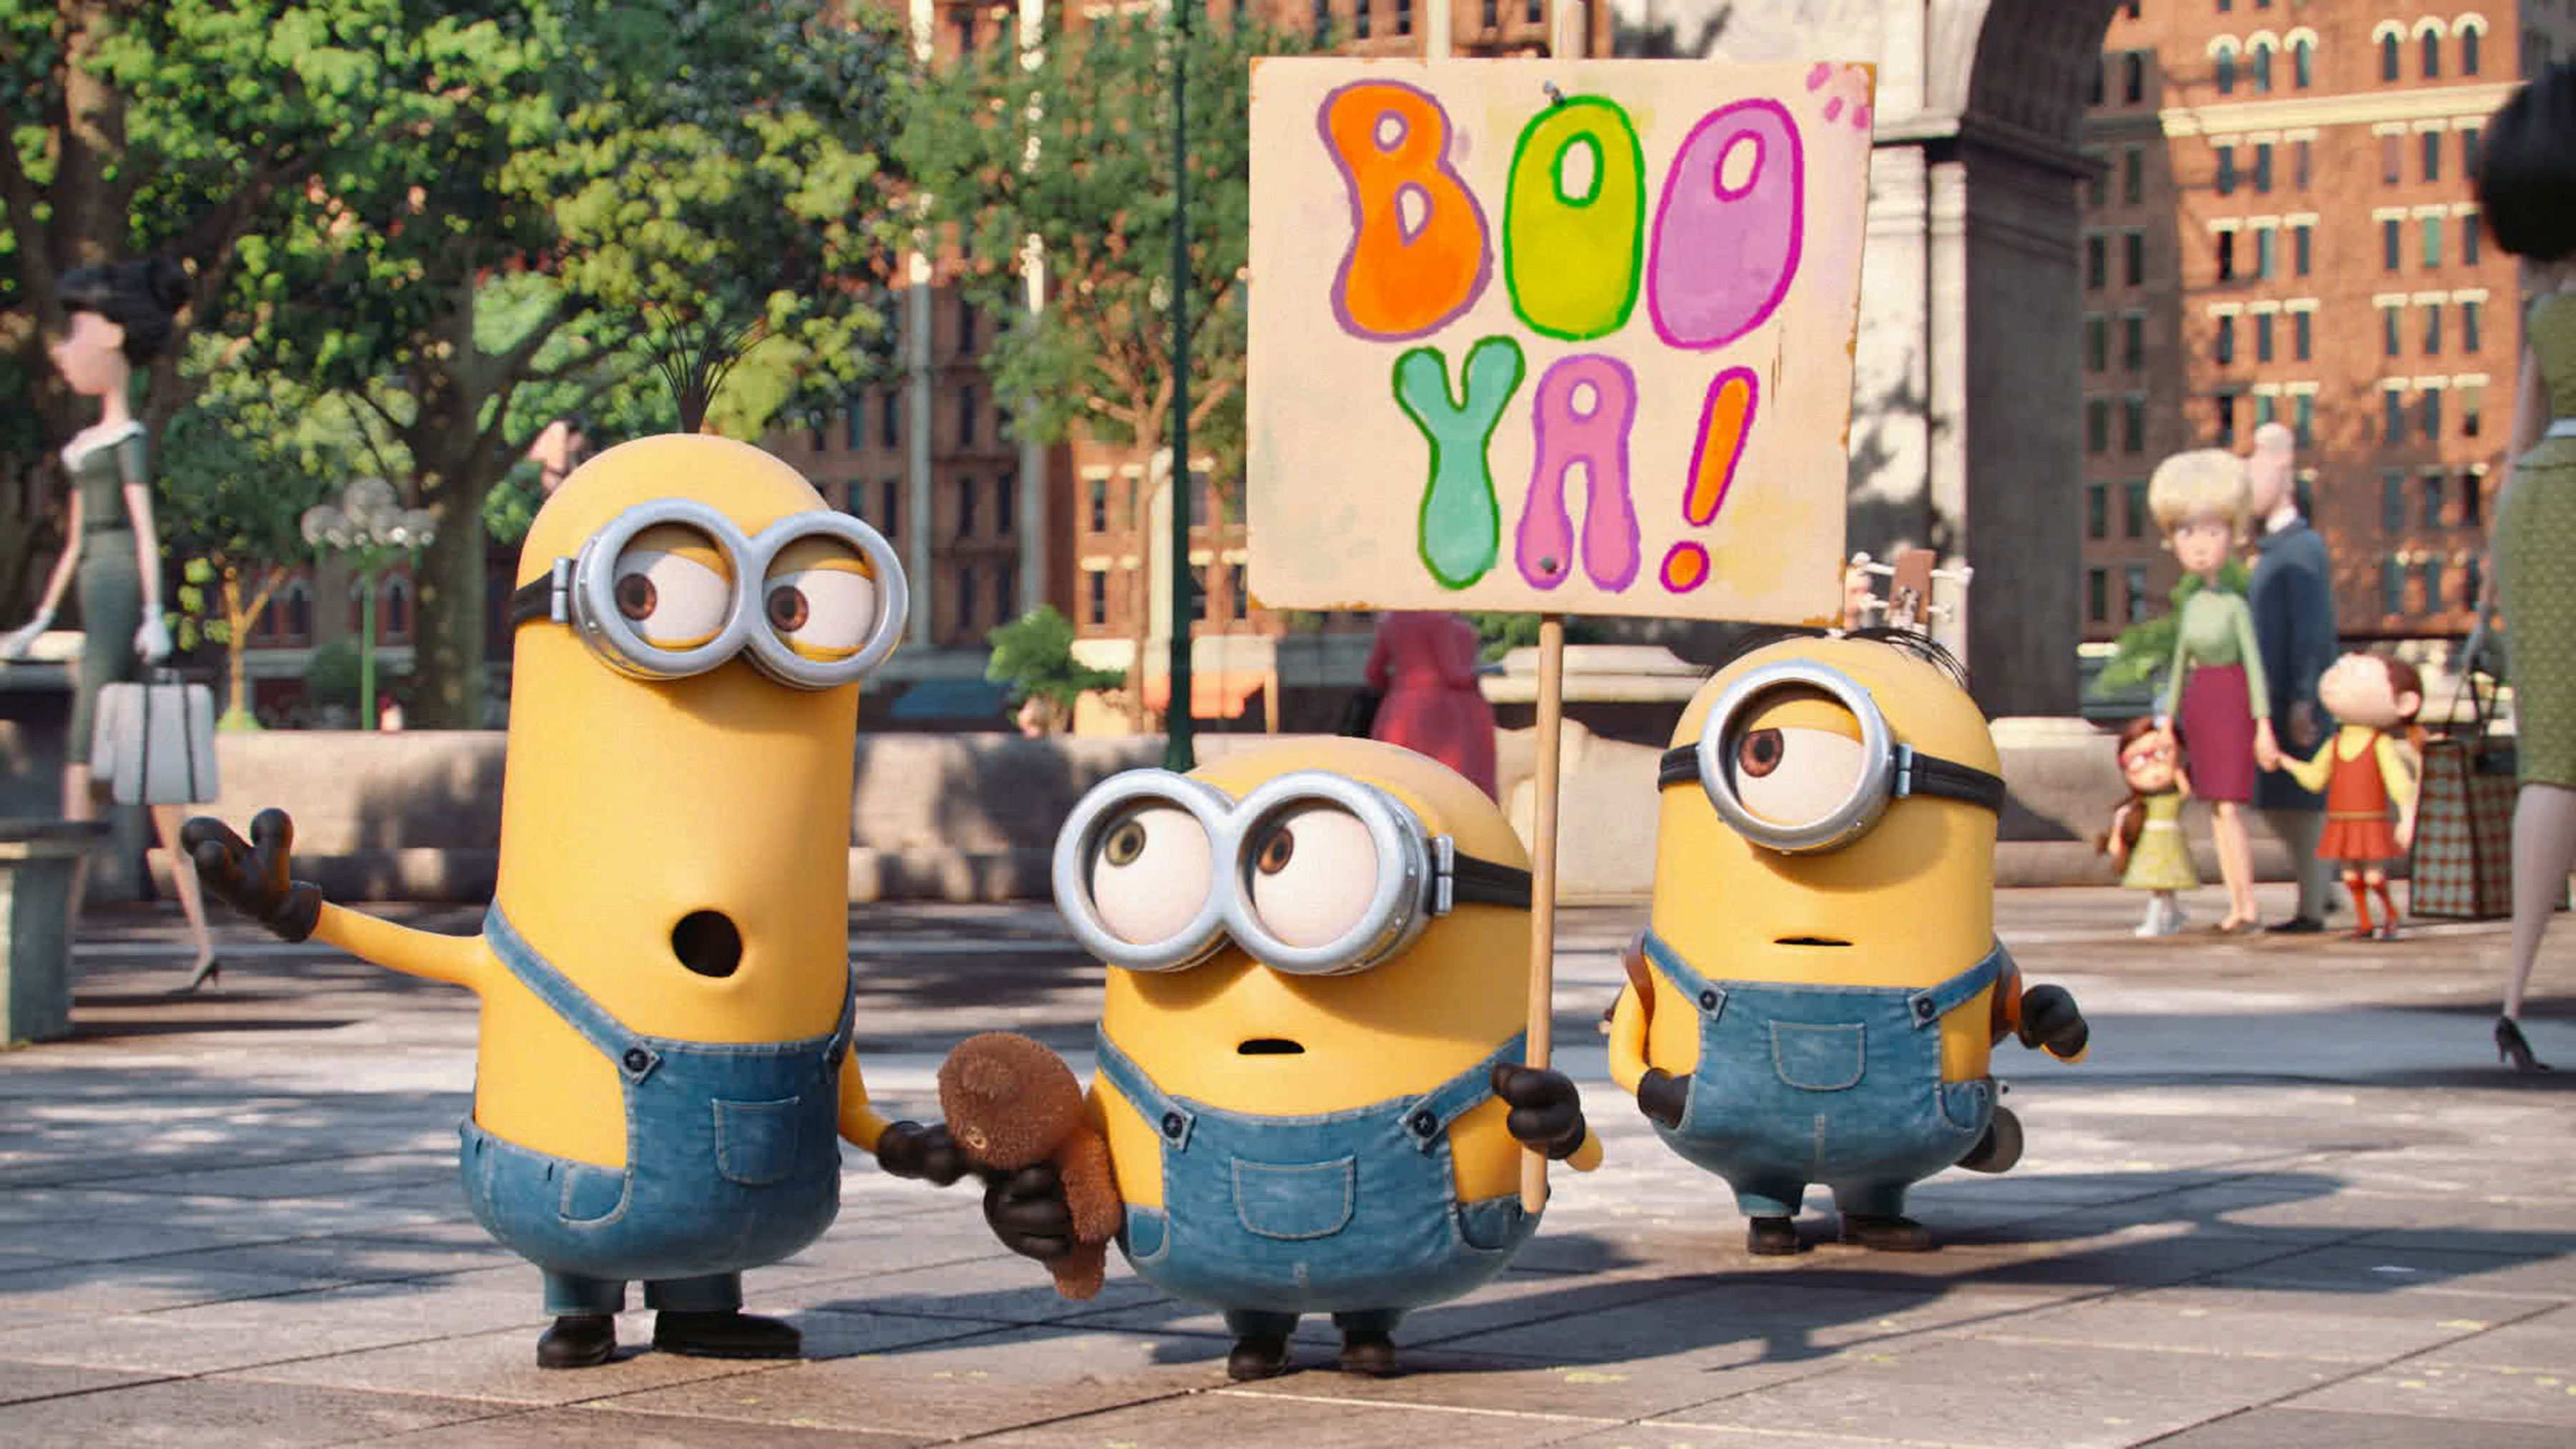 67 All New Minion 2 2020 Ratings with Minion 2 2020